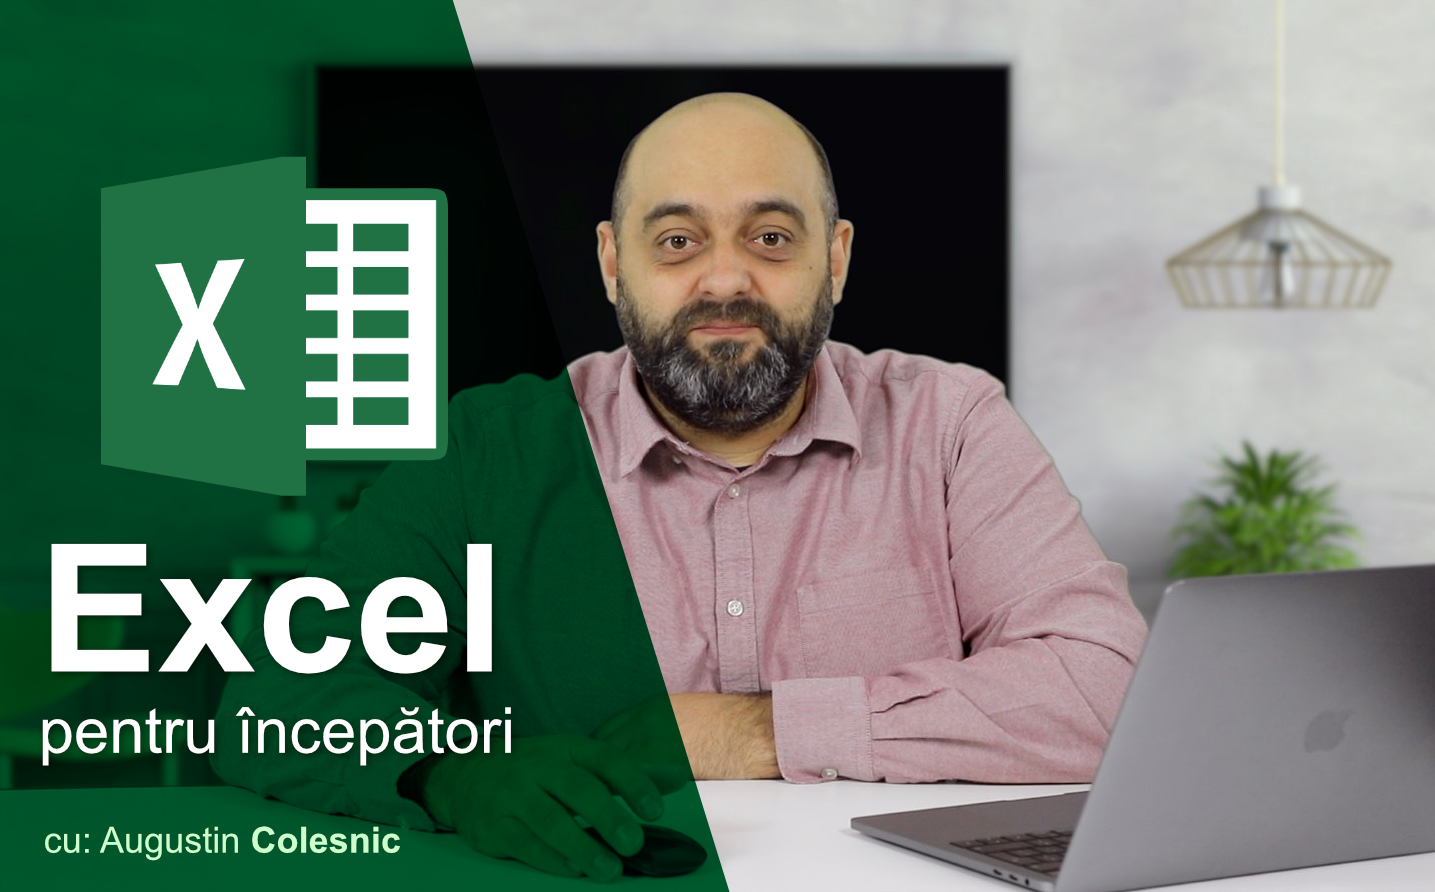 curs in limba romana despre excel - inspicio tutoriale video